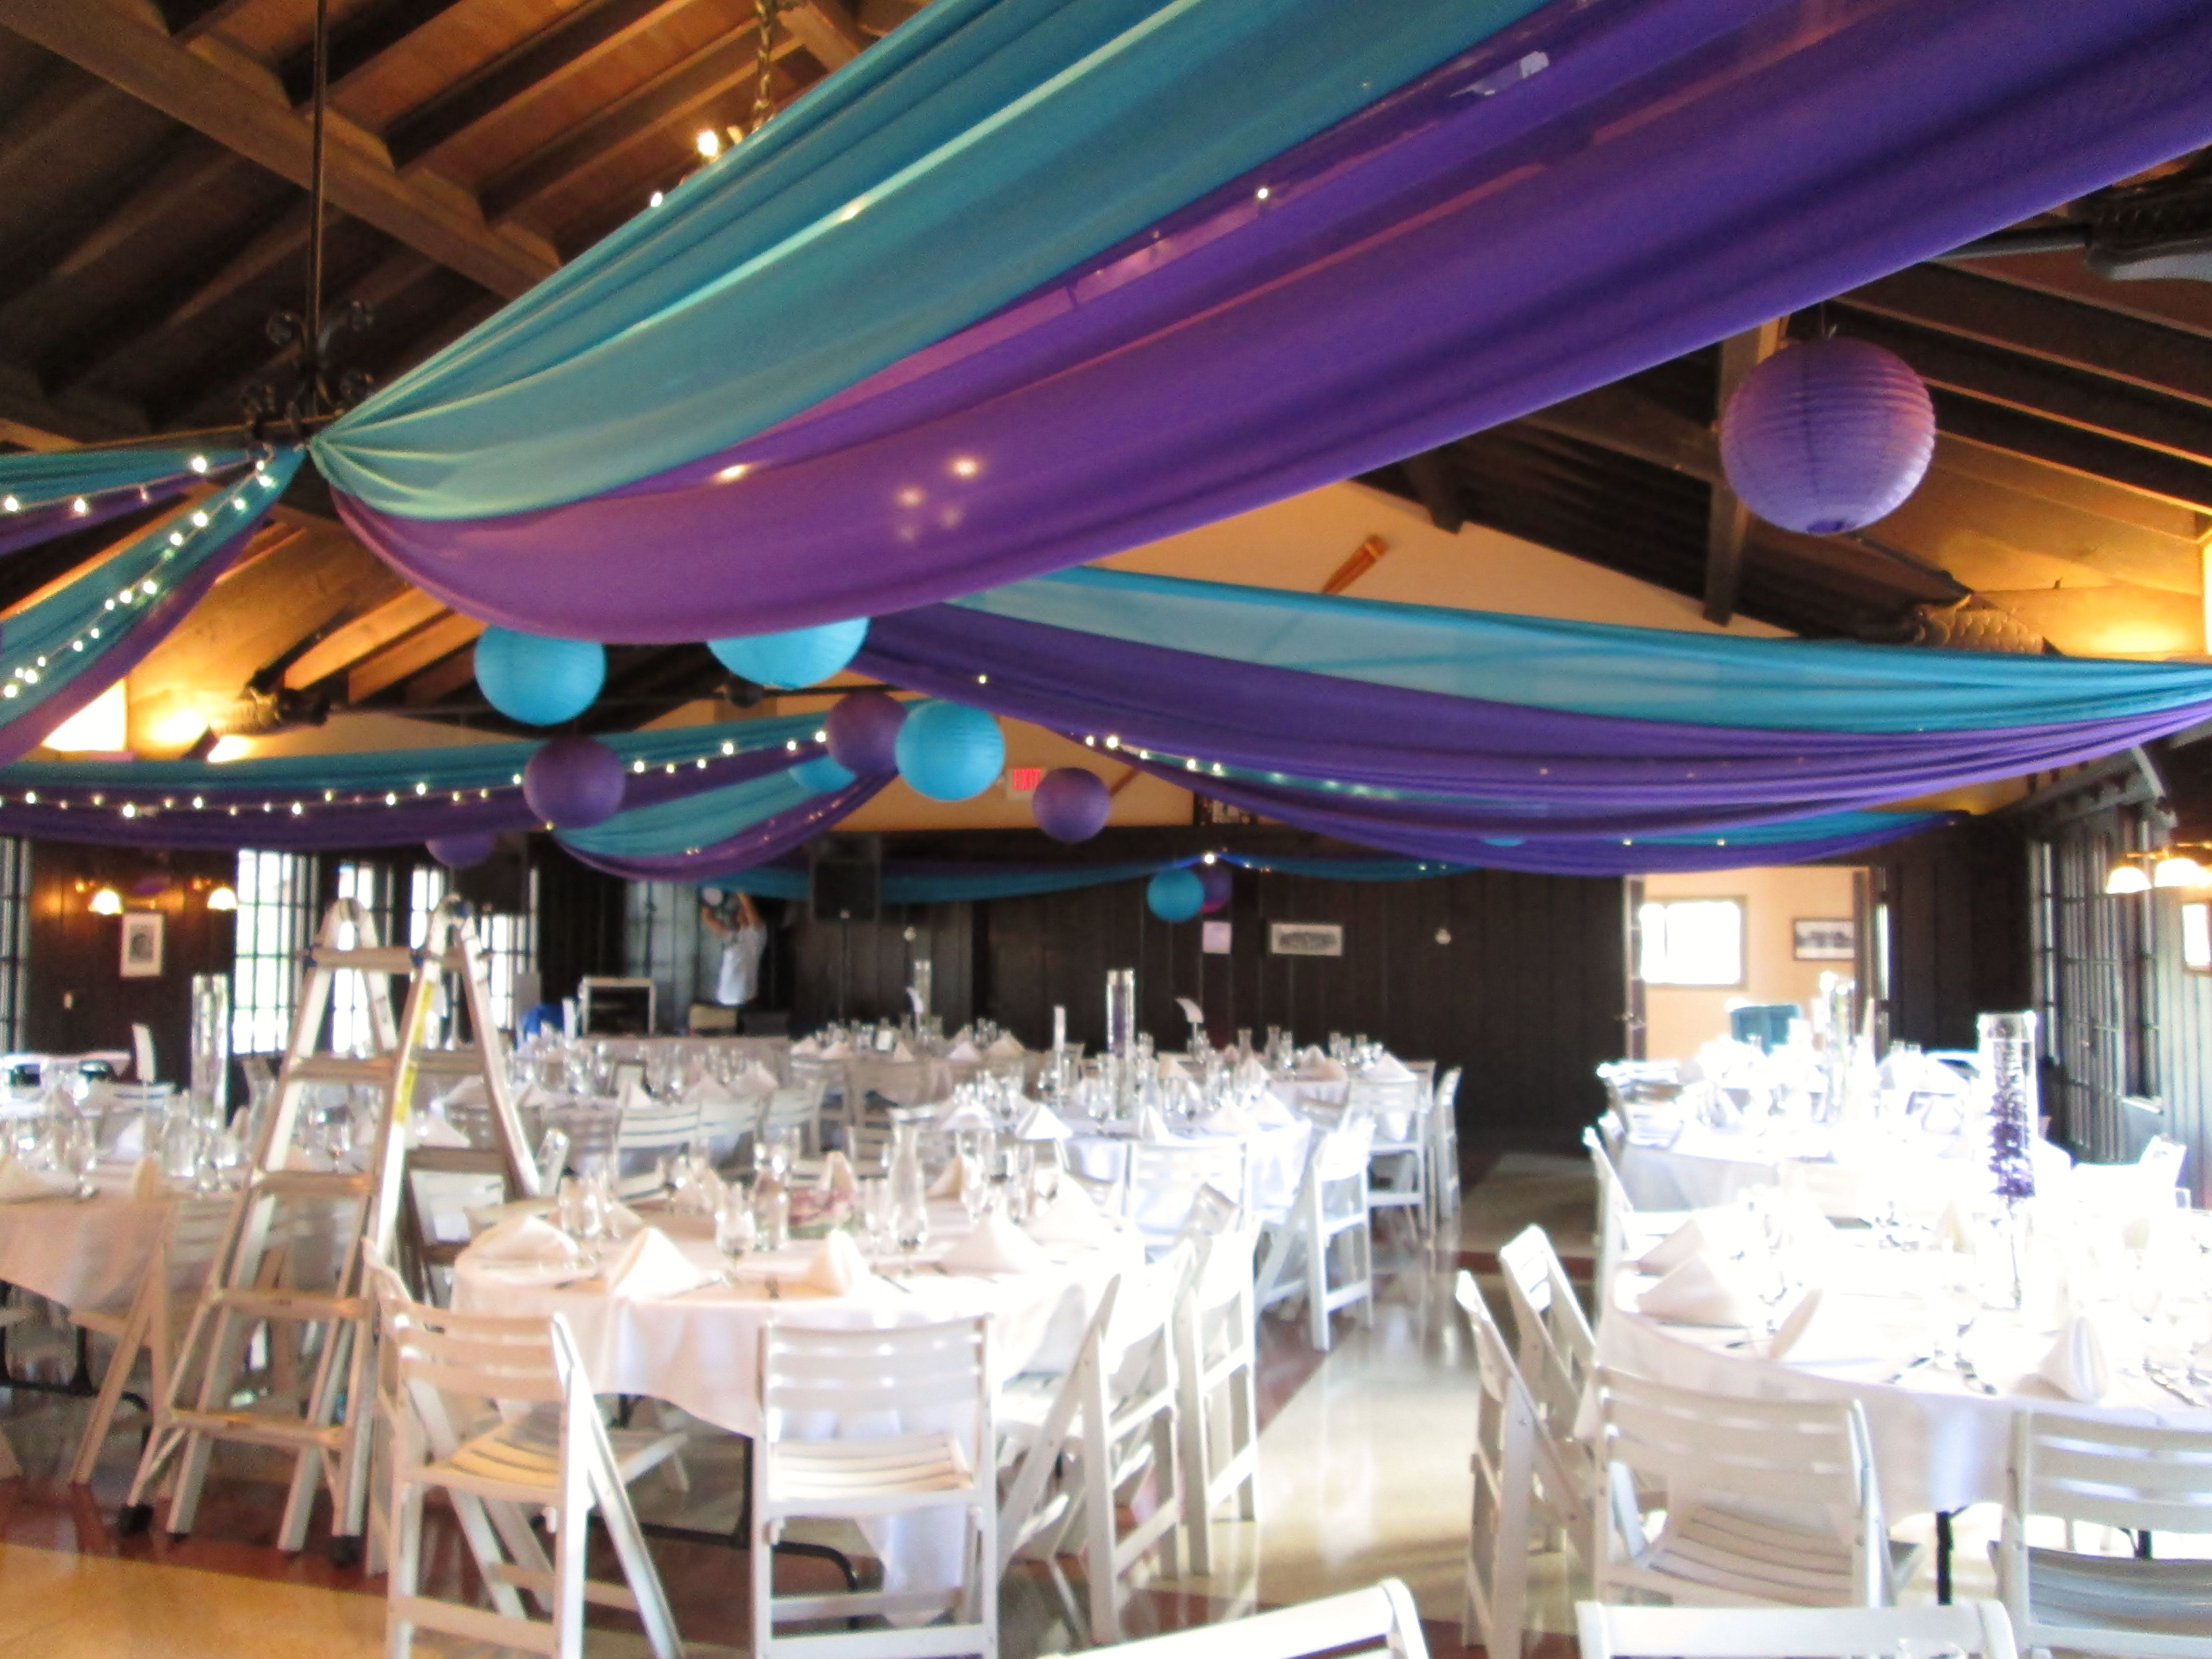 Turquoise & Purple Ceiling Draping, Turquoise & Purple Paper Lanterns  (unlit/floating)